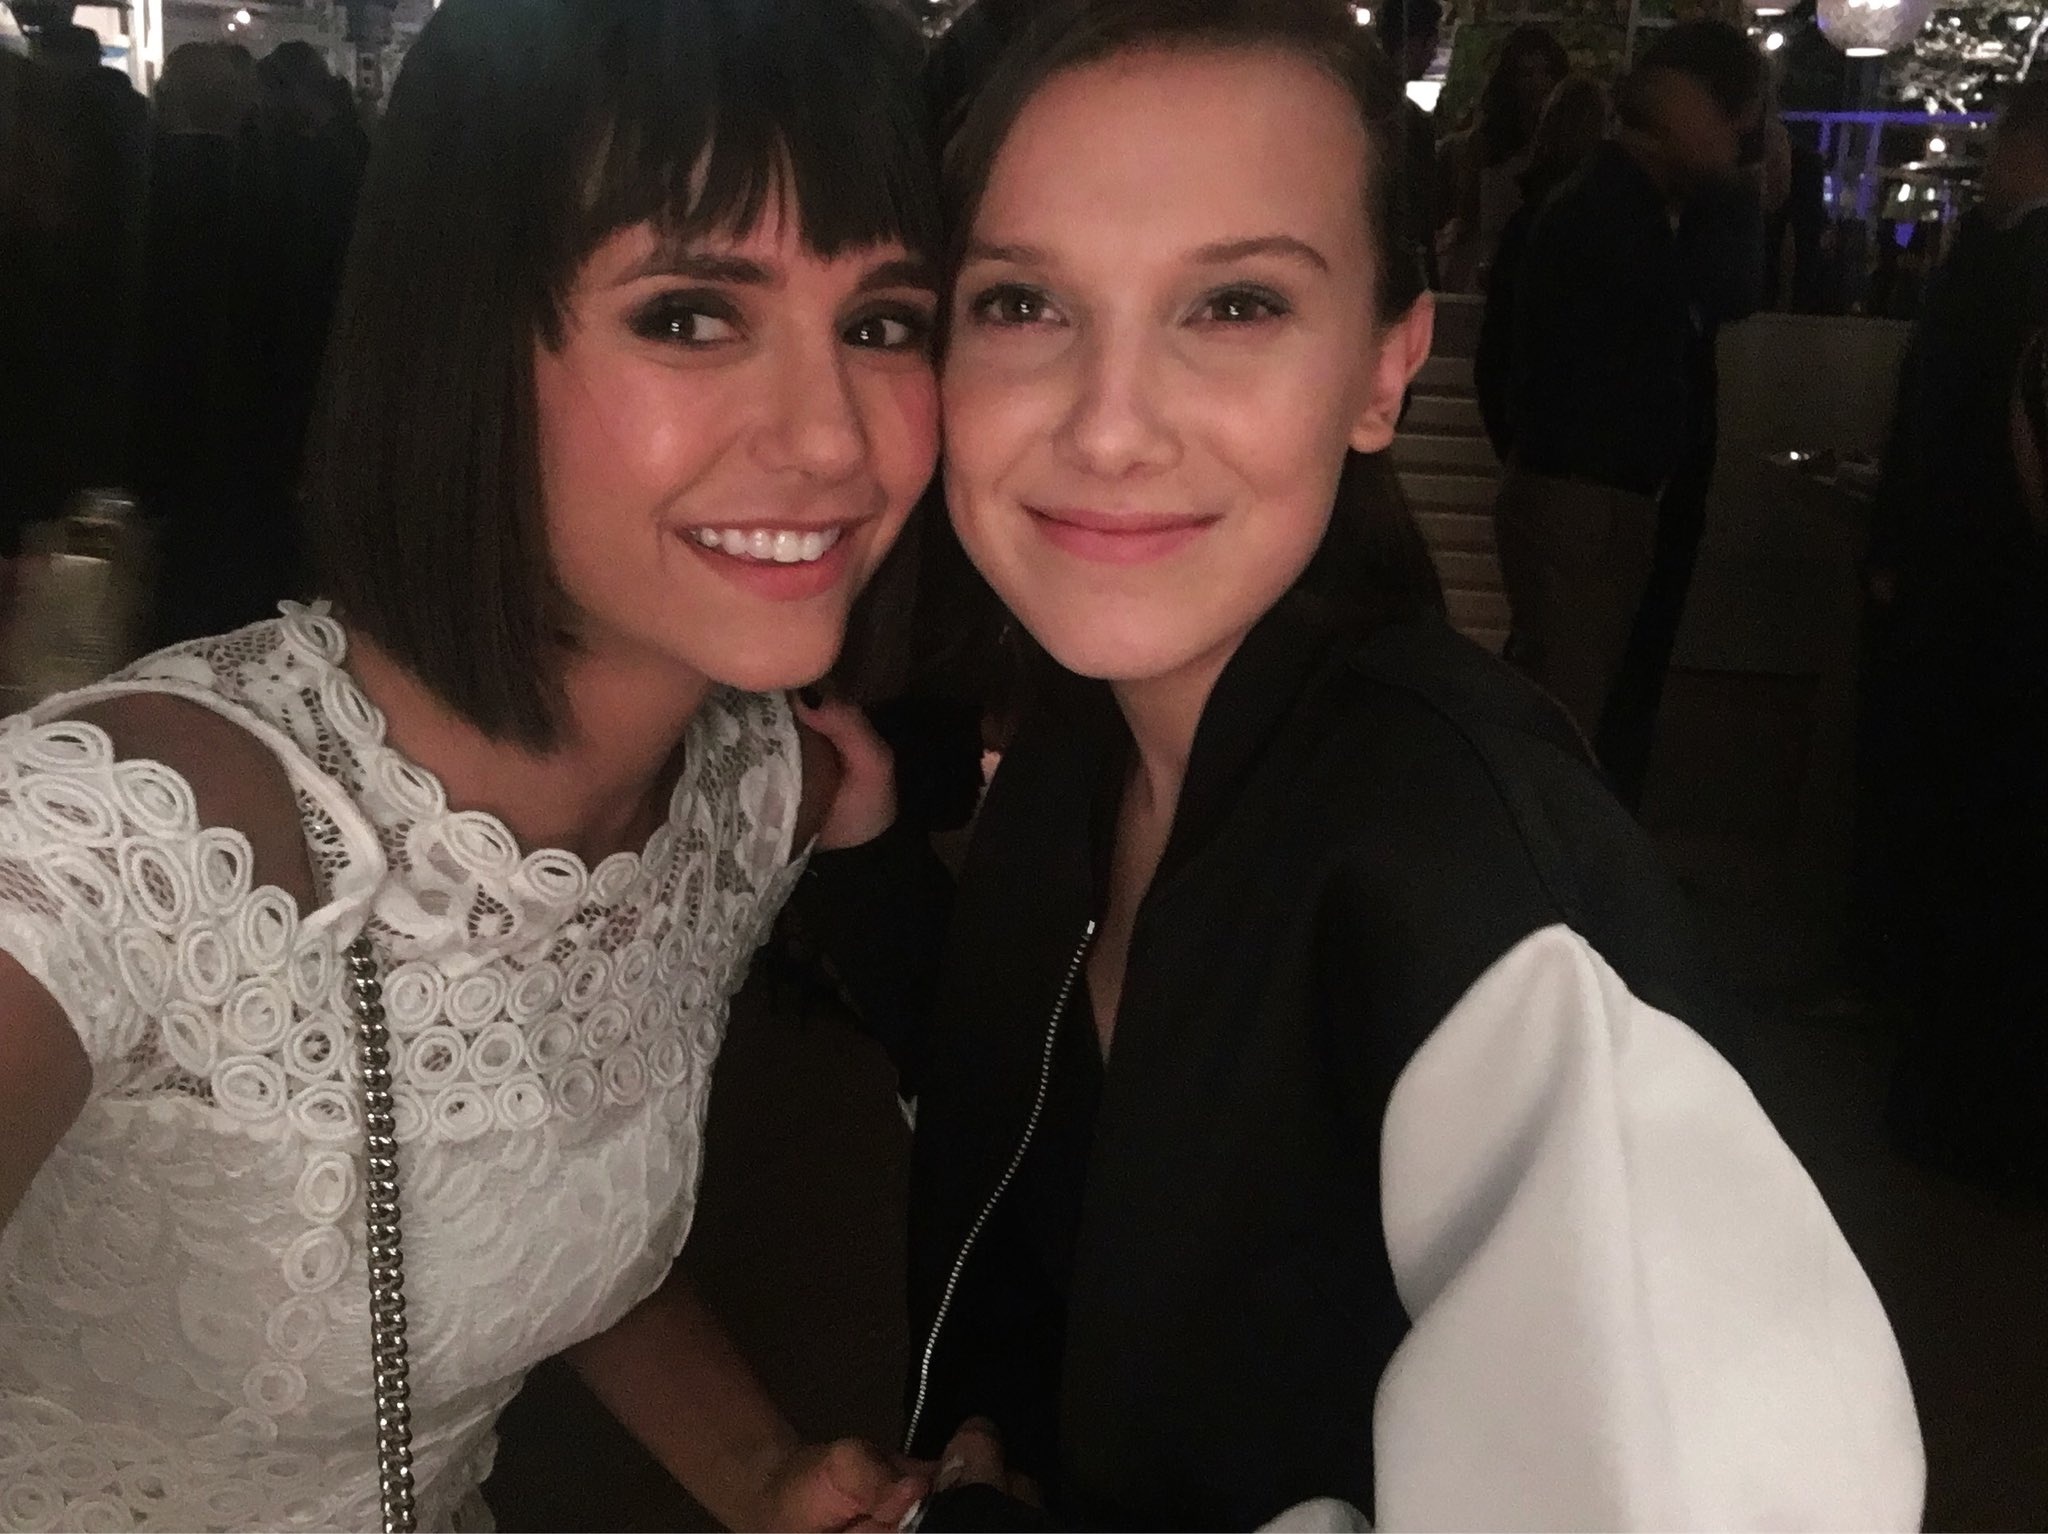 Forgot to tag this angel. @milliebbrown ❤️❤️❤️ https://t.co/pH8q4NY1Ha